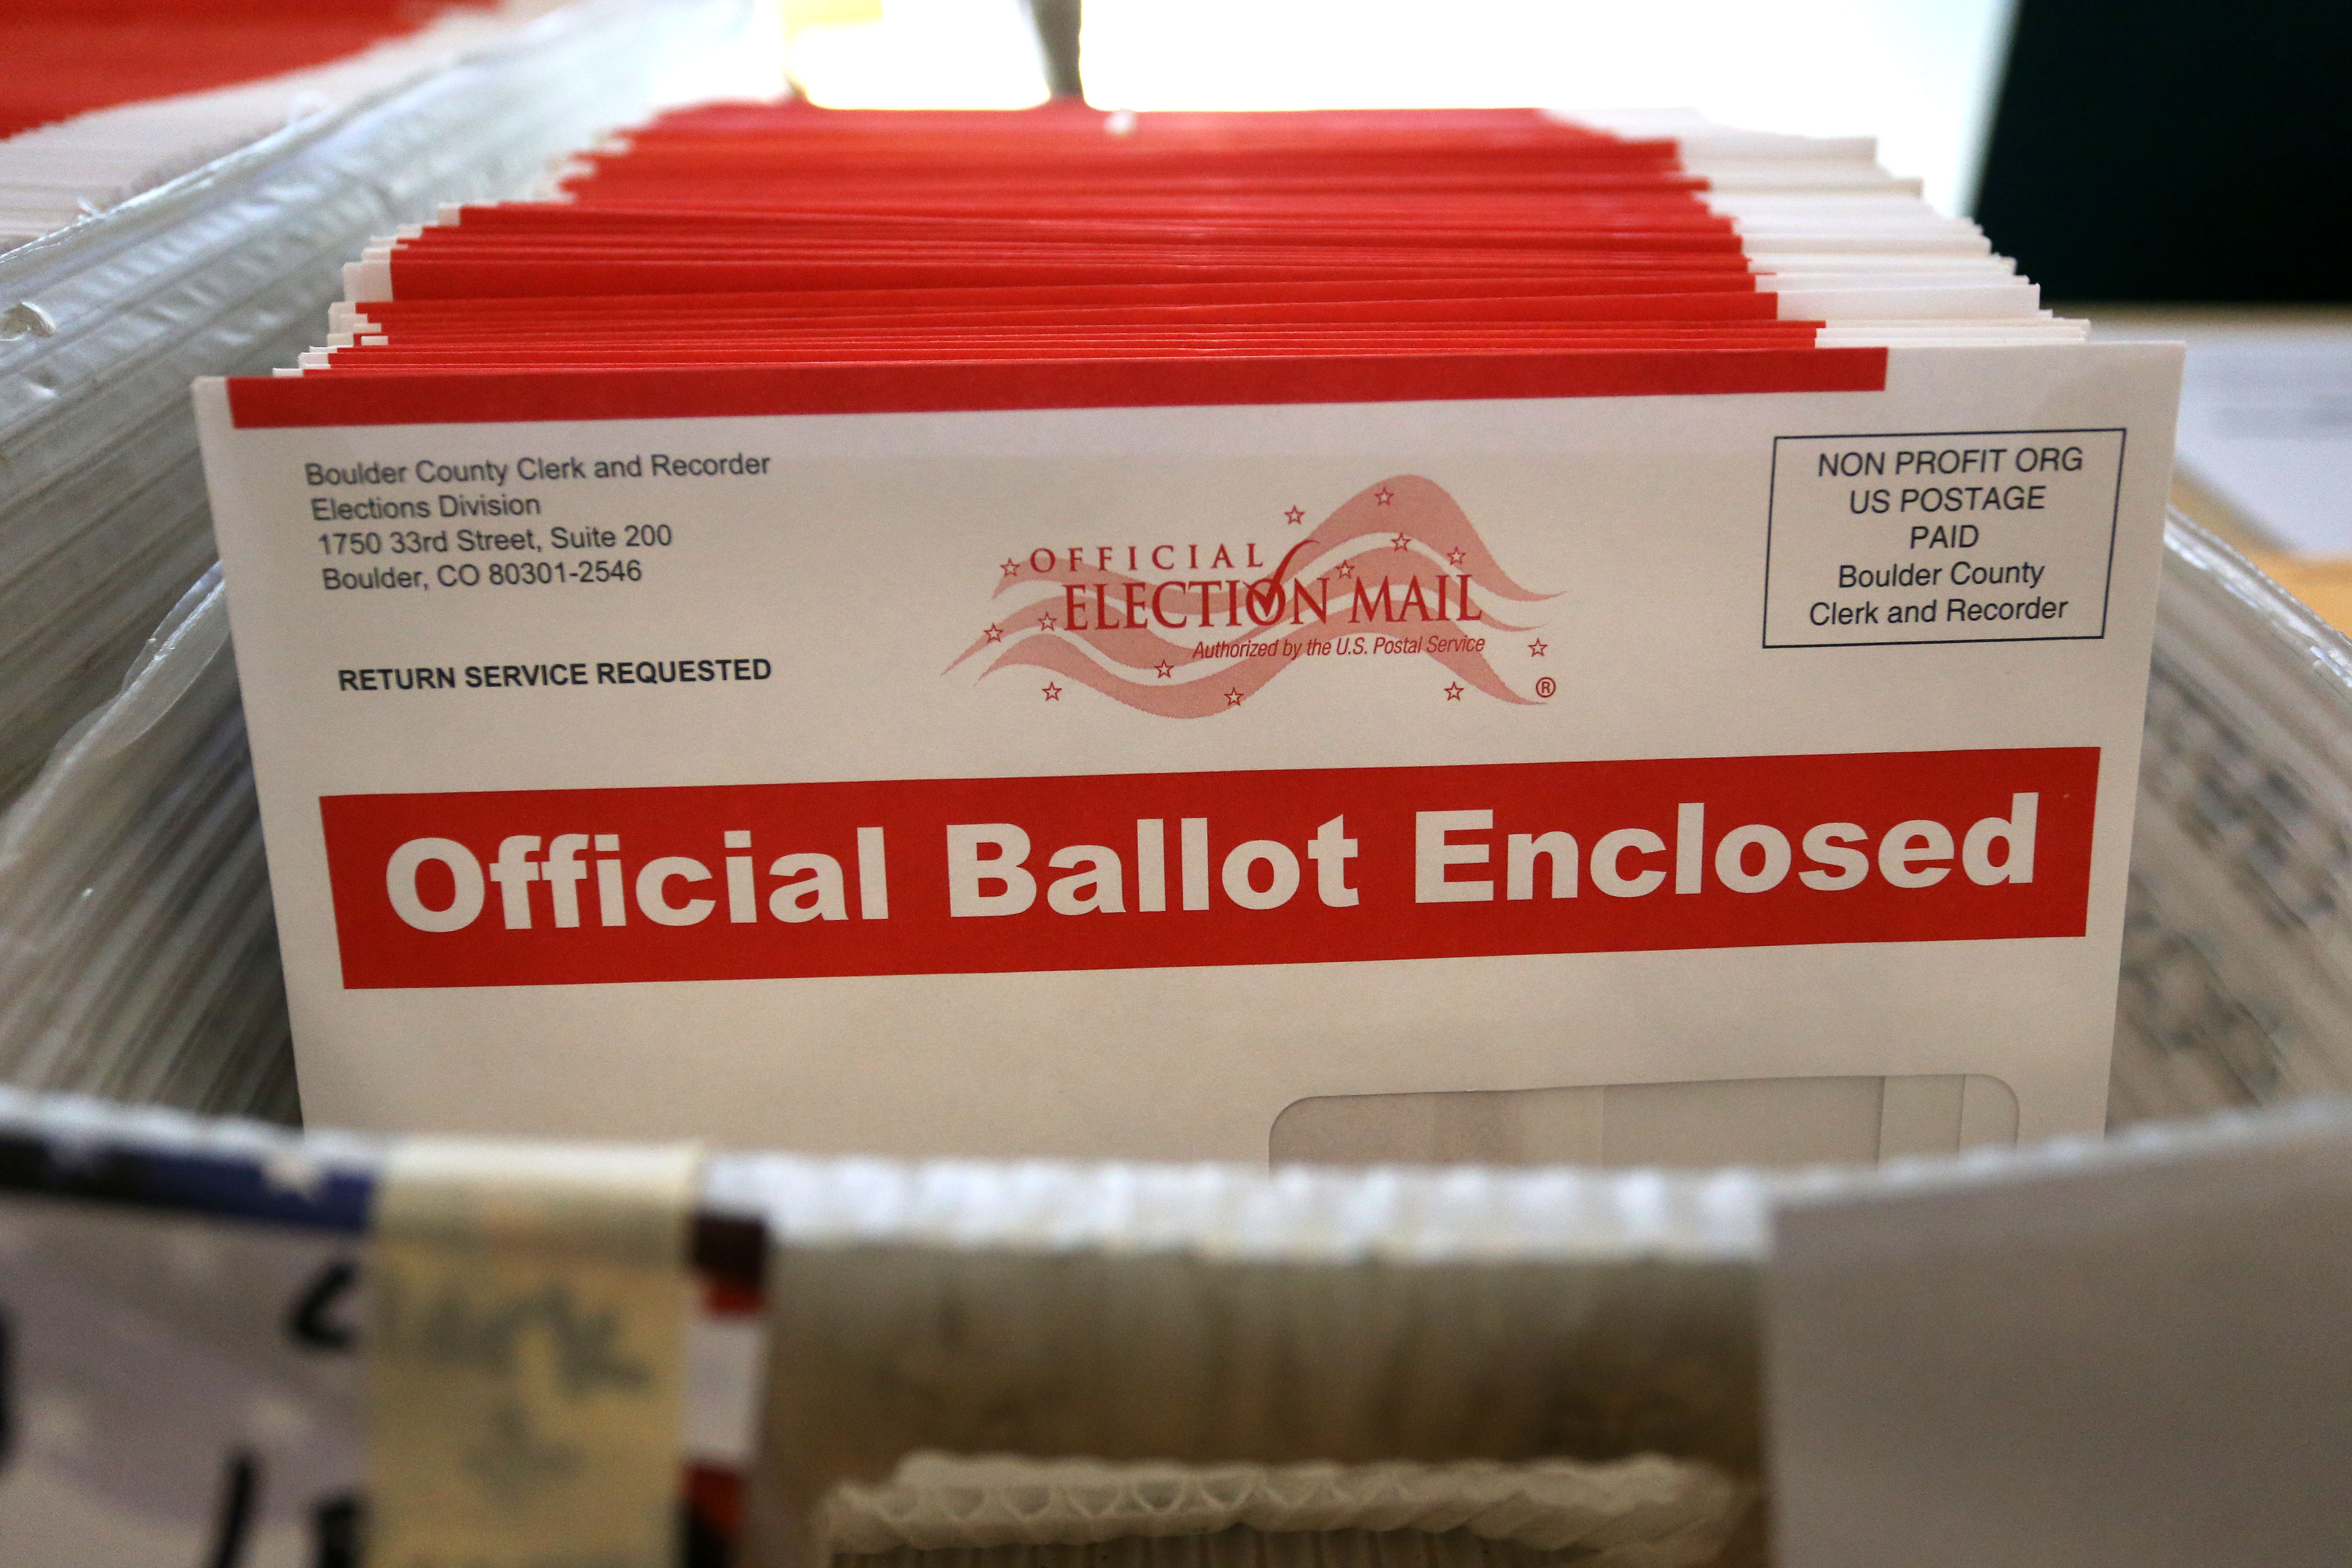 Ballots envelopes sit in a bininside a polling center at the Boulder County Clerk and Recorder's officeon Election Day 2014.